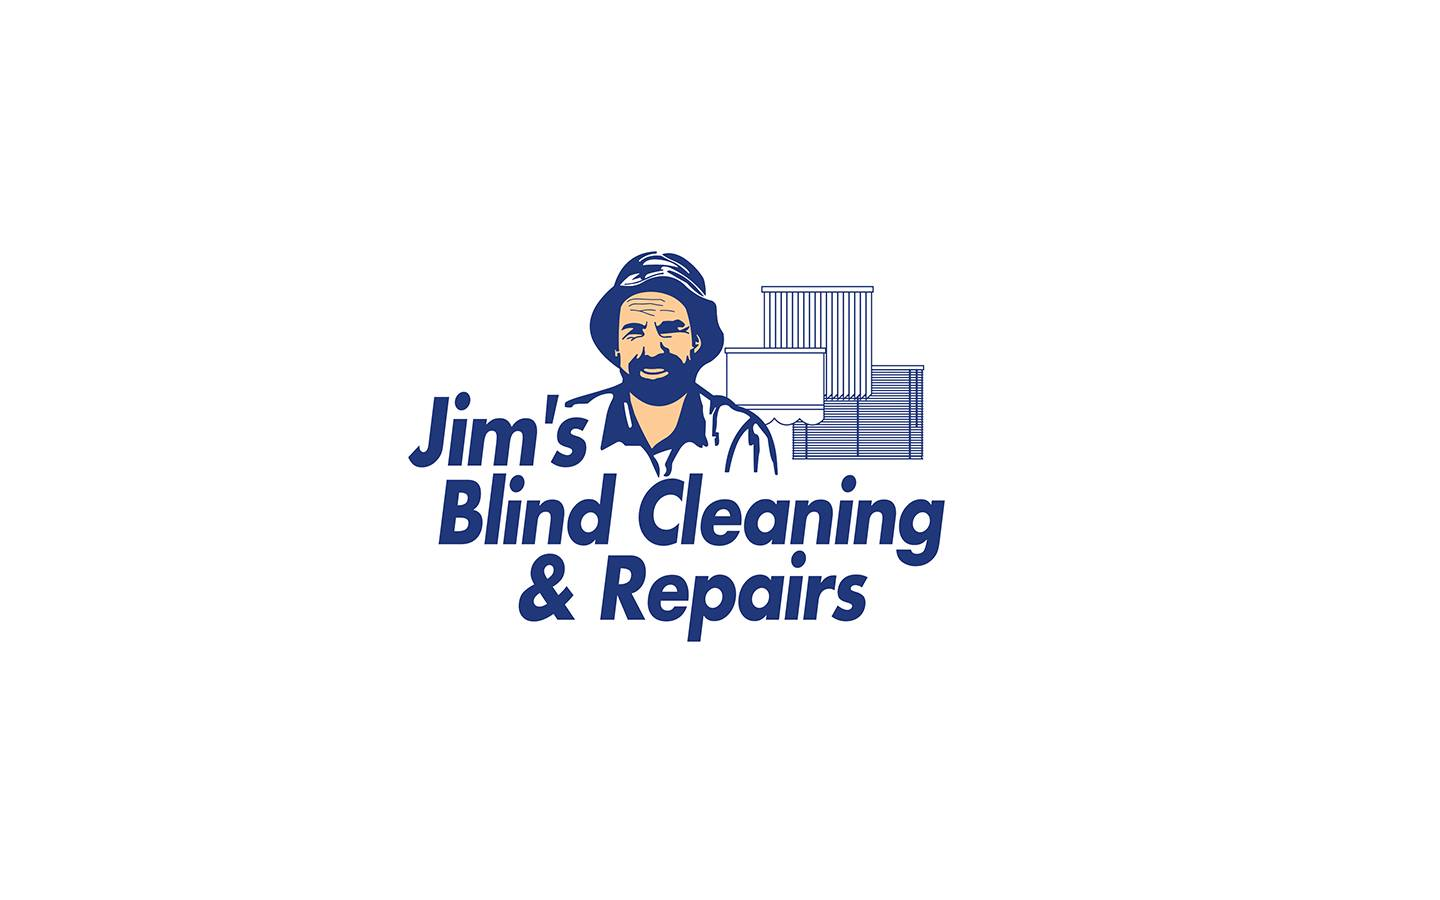 Jim's Blind Cleaning & Repairs Noranda